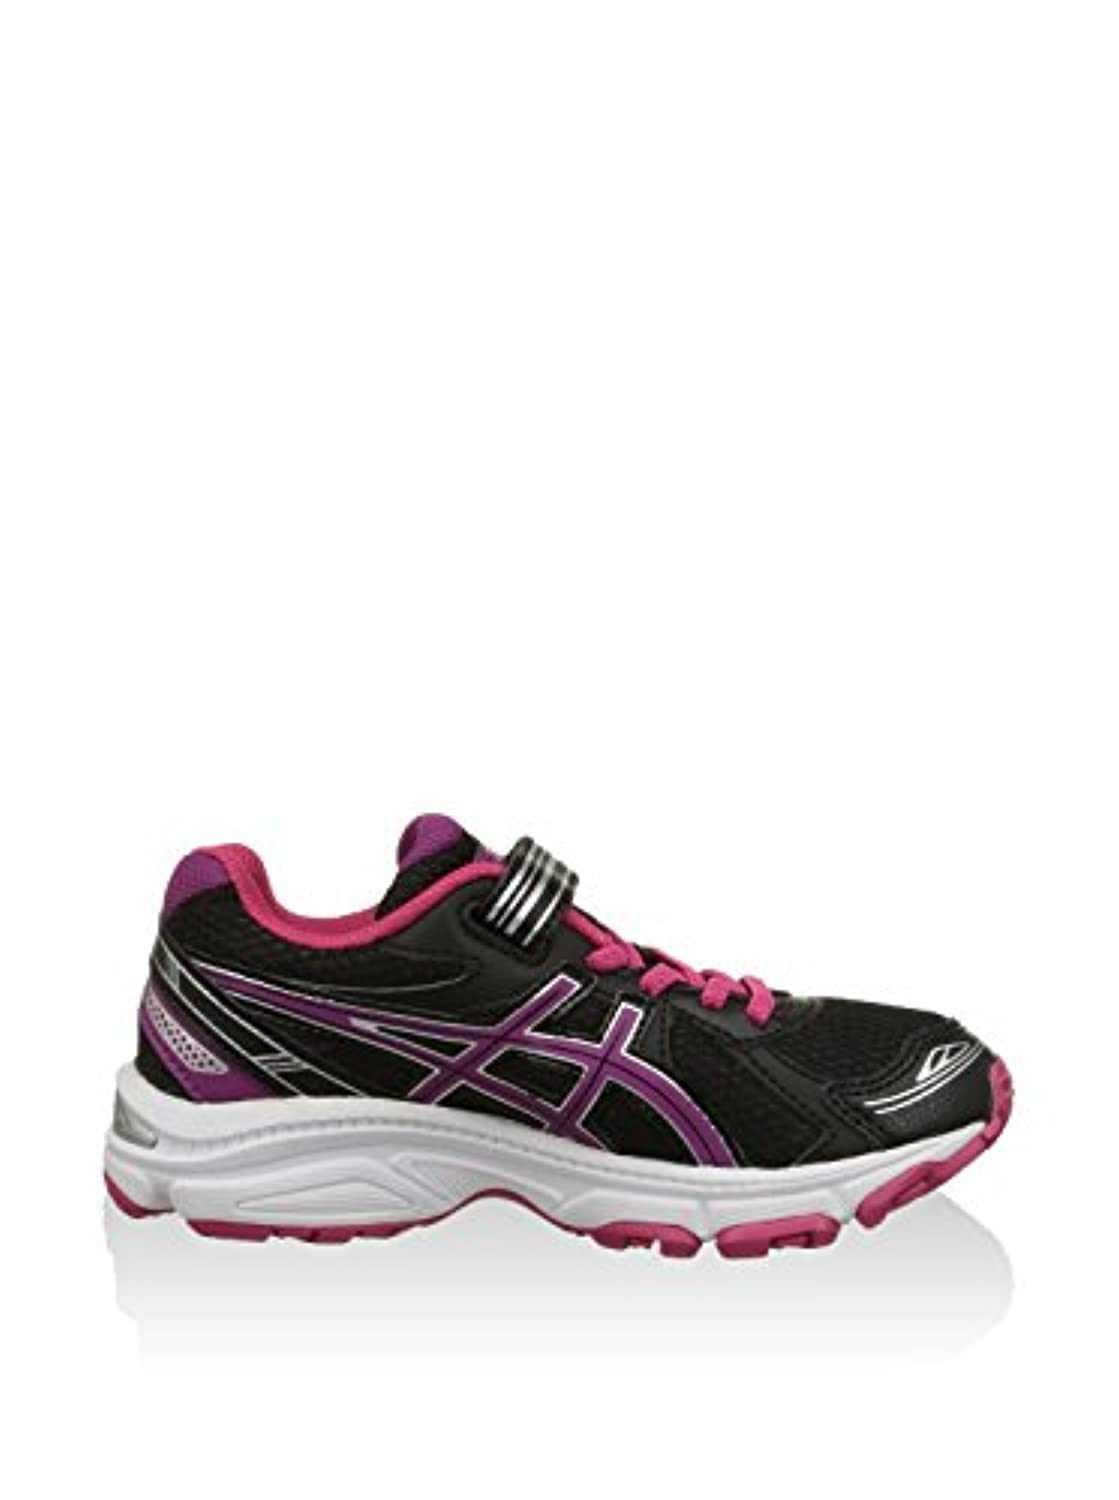 Asics Unisex Children Running Pre Galaxy 7 Ps Sneakers black Size: 13